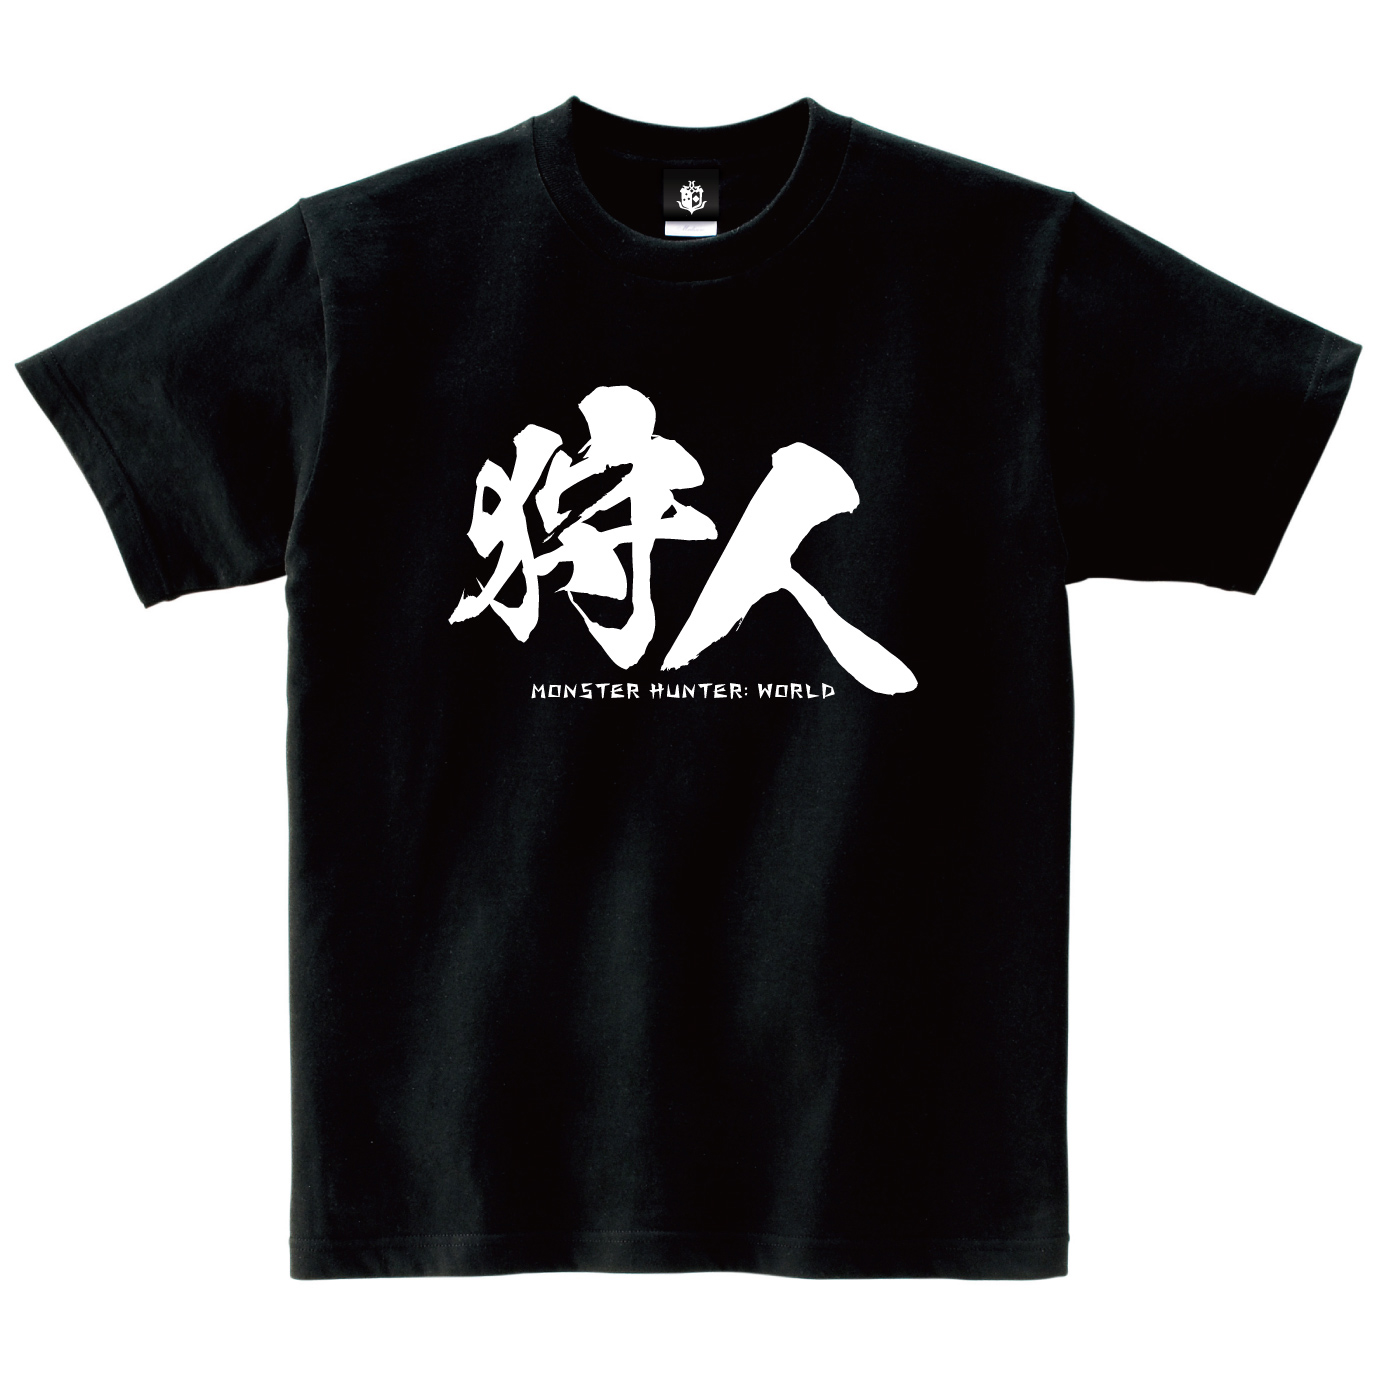 "<strong class=""em "">MH:W Tシャツ 狩人 ブラック(M/L/XL)</strong><br />価格:各3,800円(税別)"